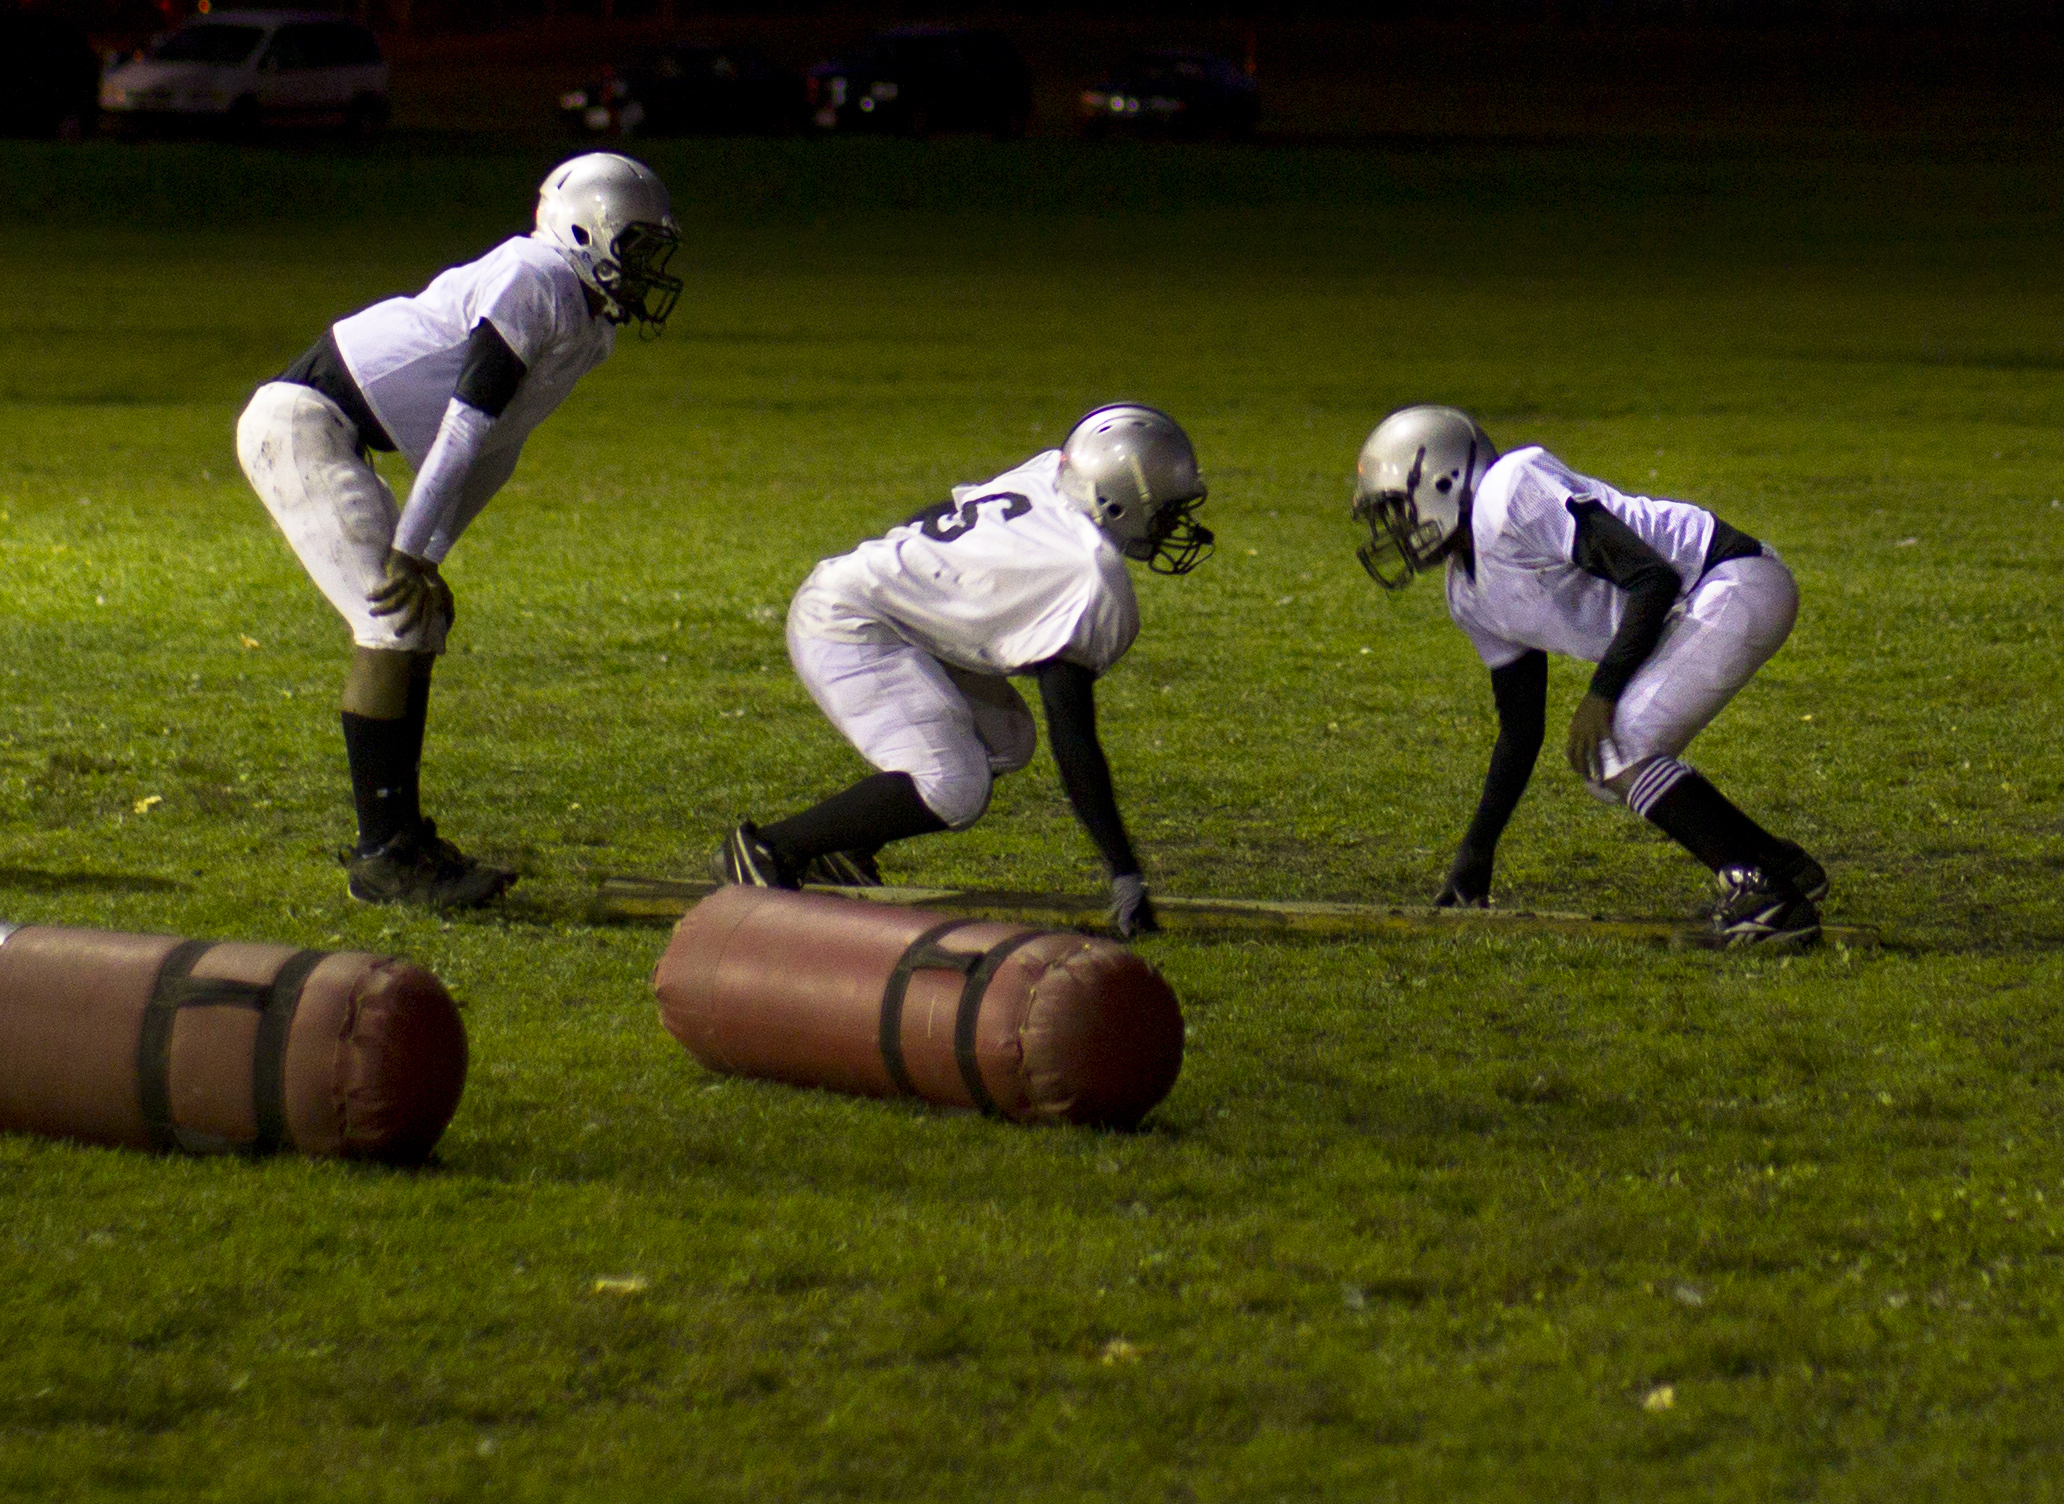 Study Of Retirees Links Youth Football >> Study Links Youth Football To Greater Risk Of Later Health Problems